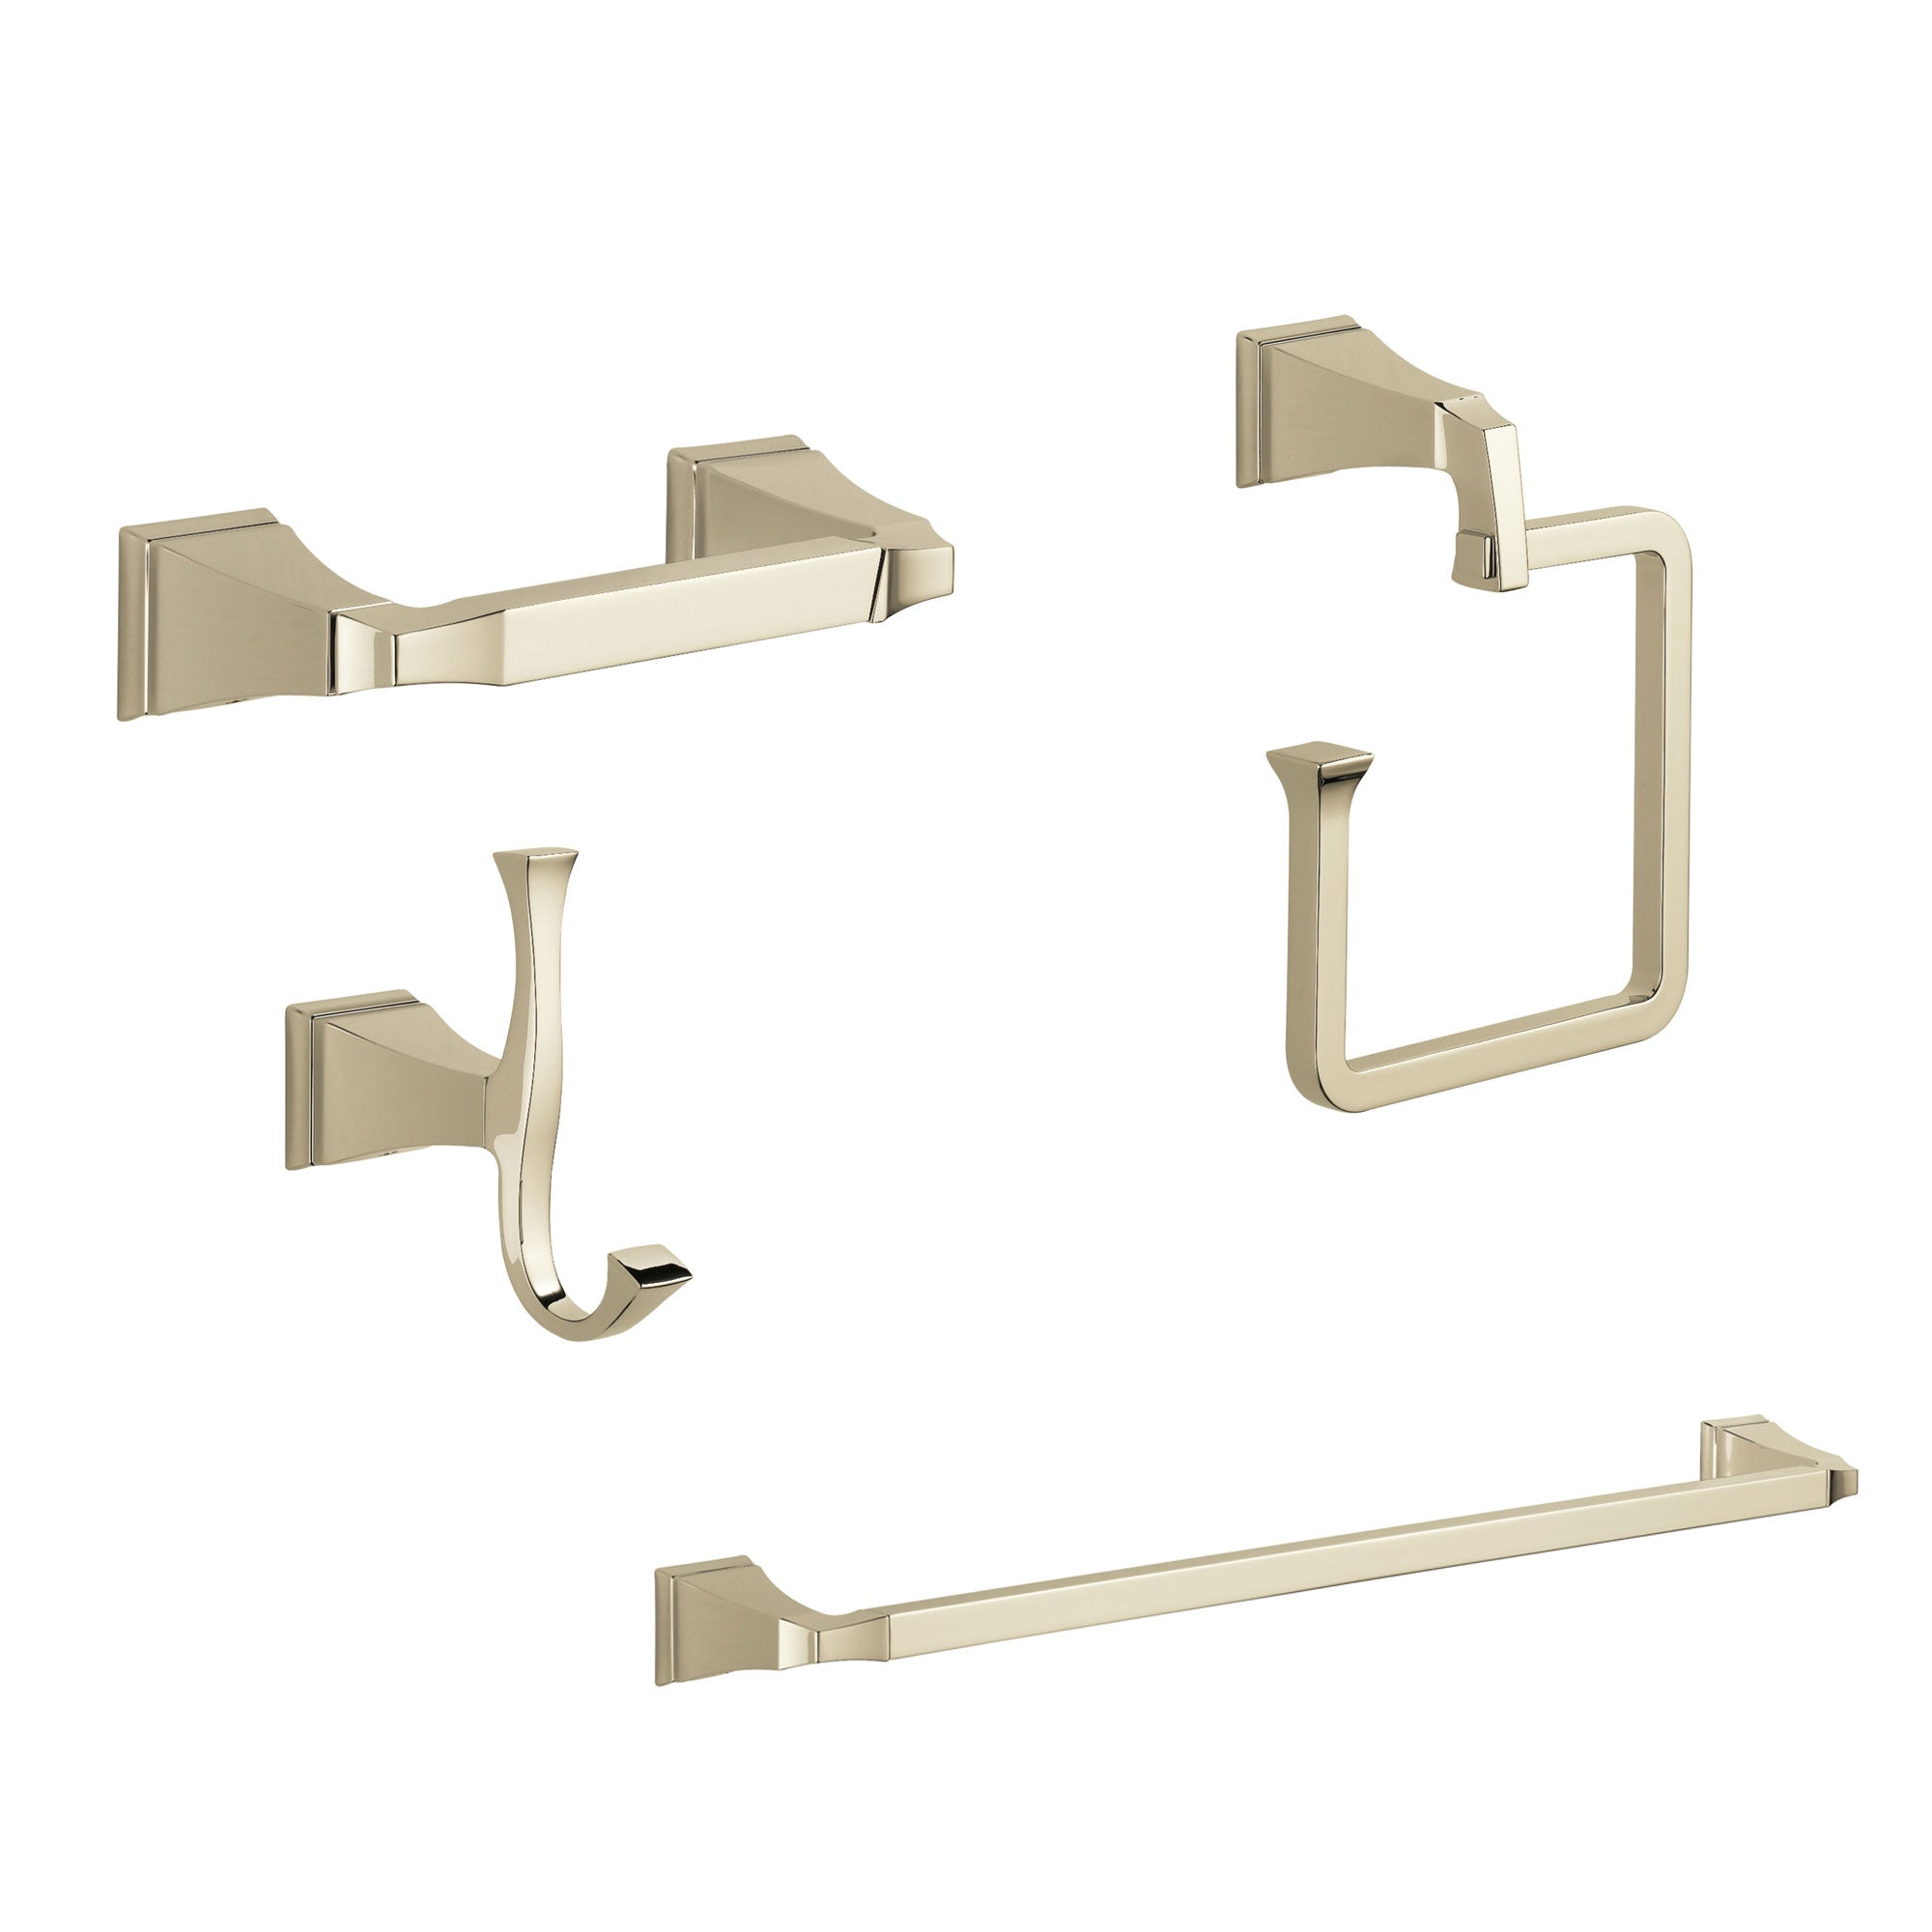 "Delta Dryden Polished Nickel STANDARD Bathroom Accessory Set Includes: 24"" Towel Bar, Toilet Paper Holder, Robe Hook, and Towel Ring D10038AP"